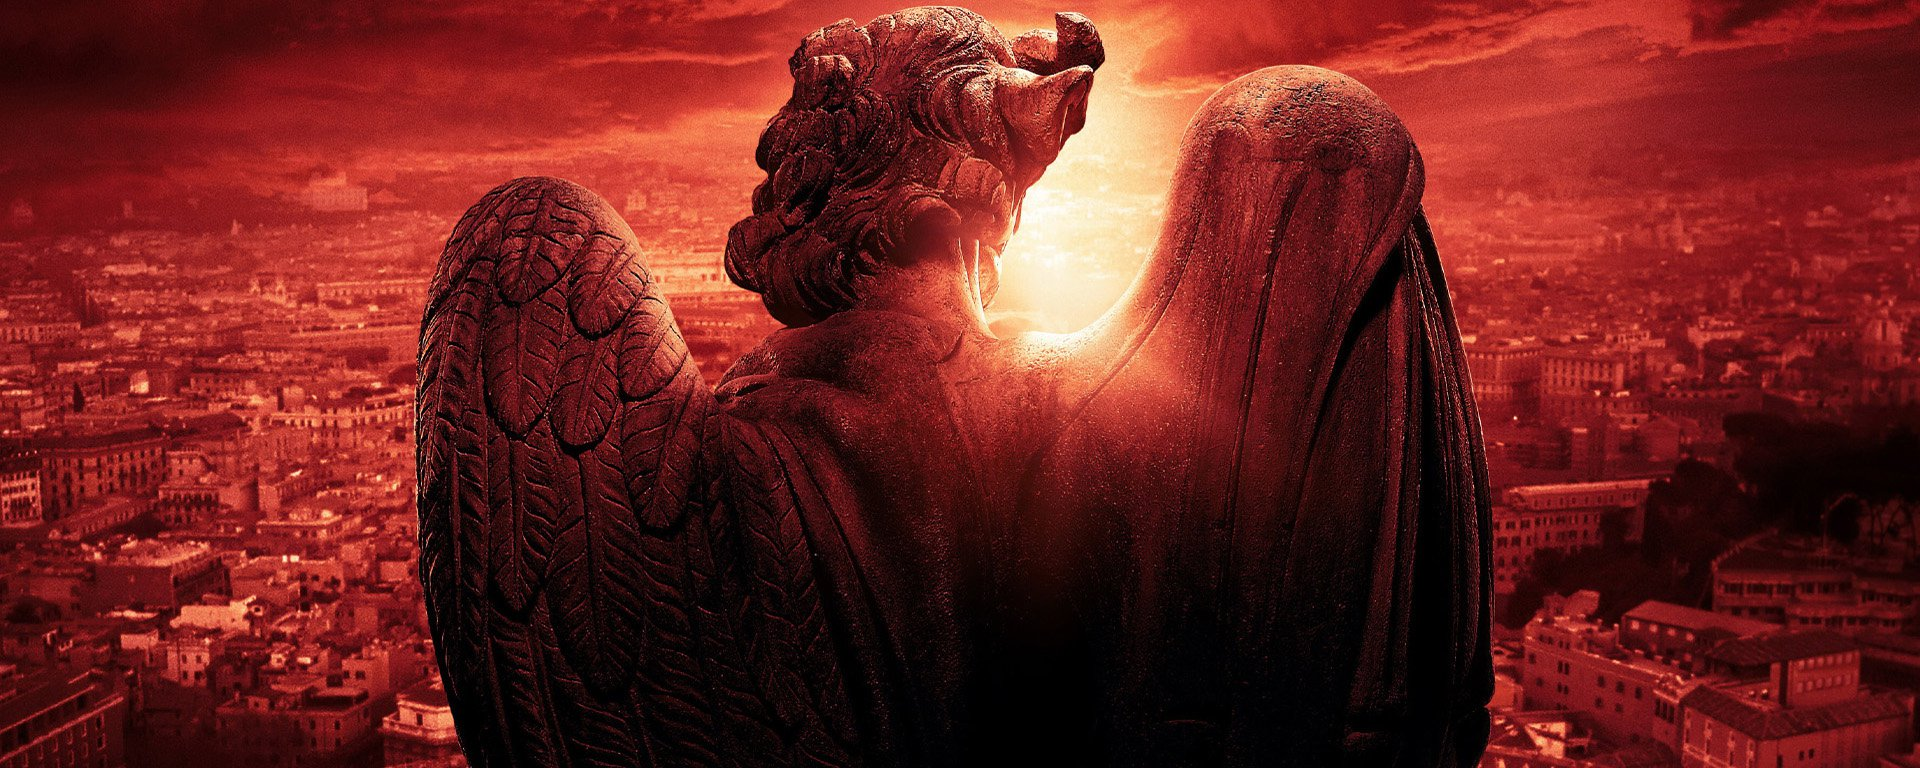 Top 4 Great World Truths From Angels And Demons Novel -2880